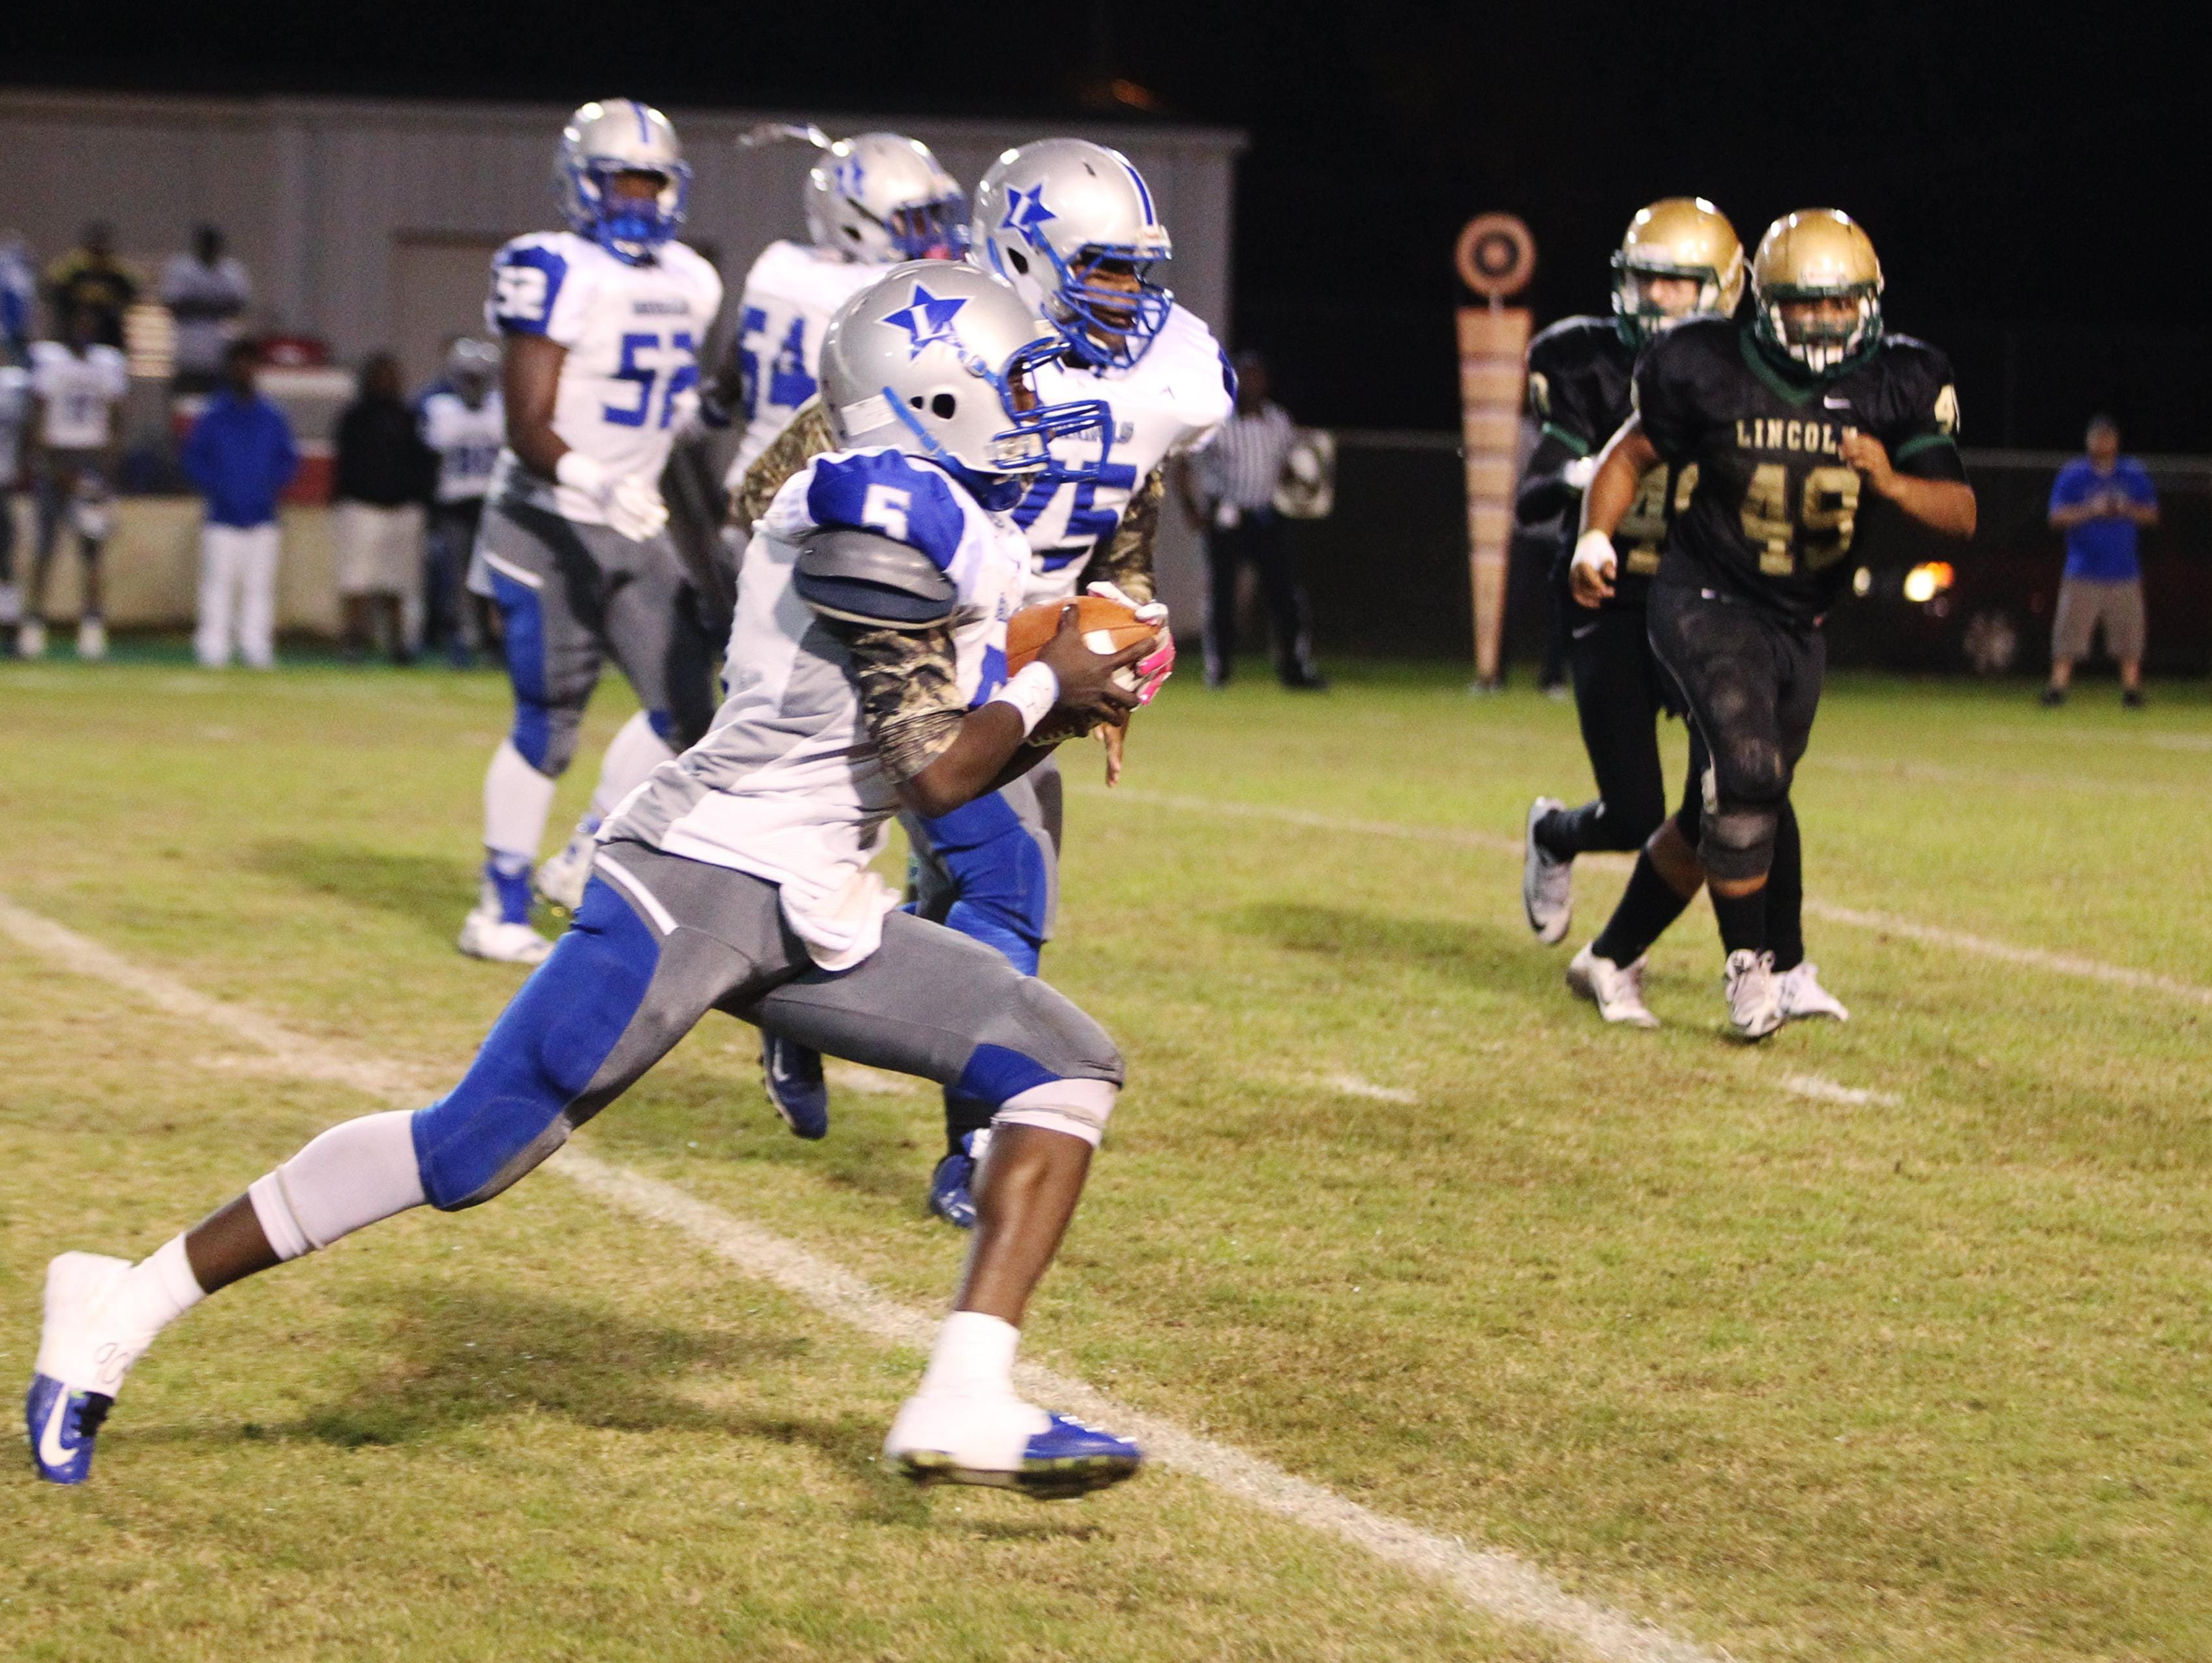 Lee's Derrick Jones rushed for 167 yards and three touchdowns and threw for 140 yards and a score, but he also threw two costly interceptions as Lincoln won 44-41 in overtime.